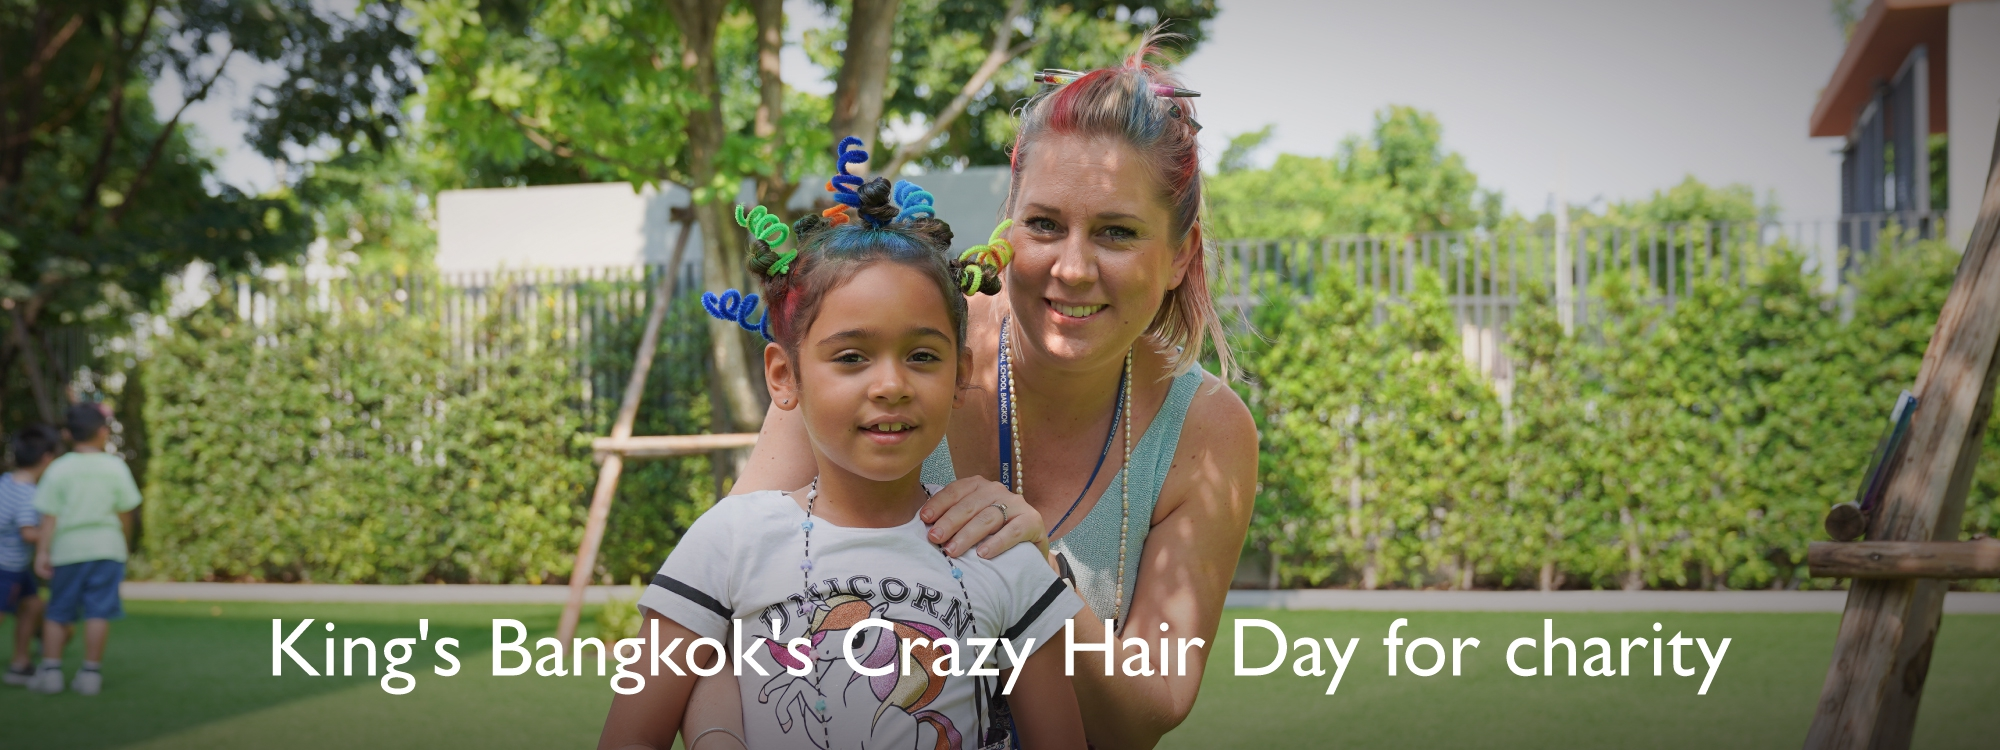 King's Bangkok's Crazy Hair Day for charity.